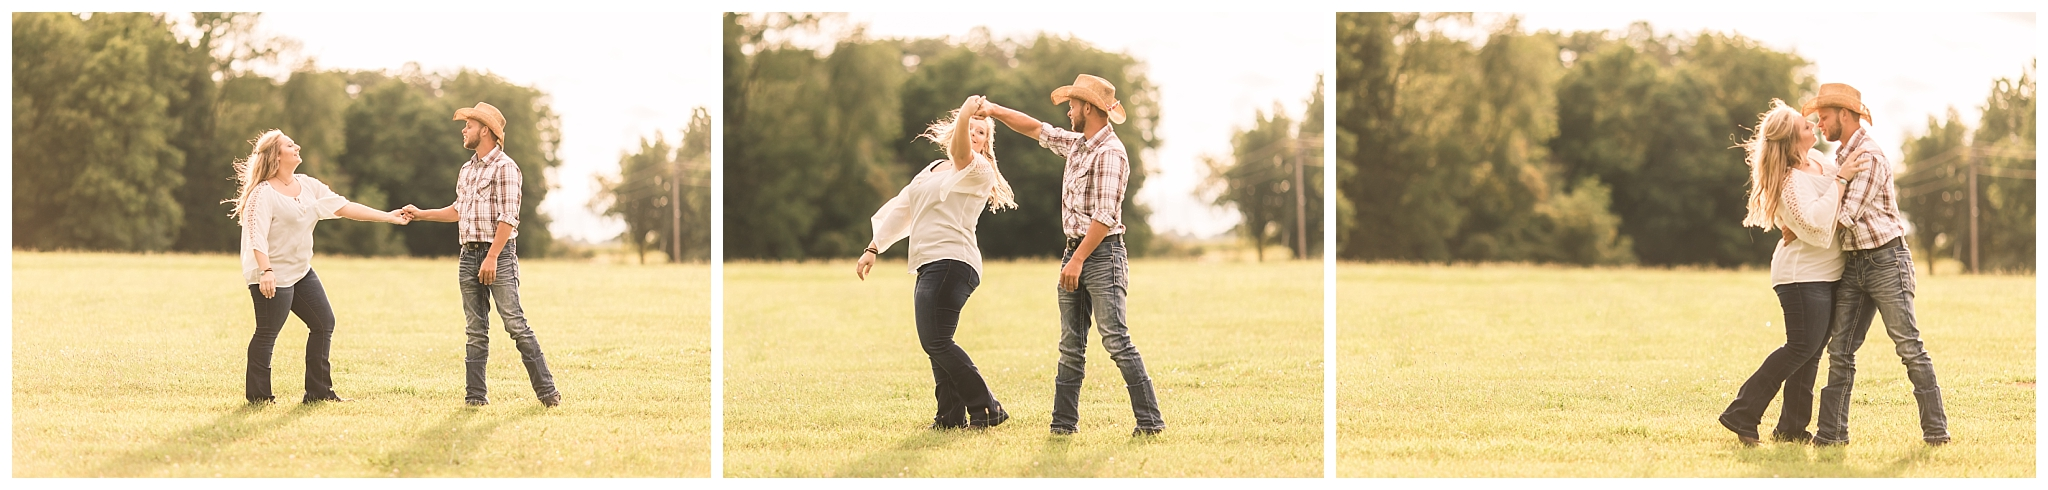 lafayette indiana sunset engagement photography county fair adventure new adventure productions_0674.jpg